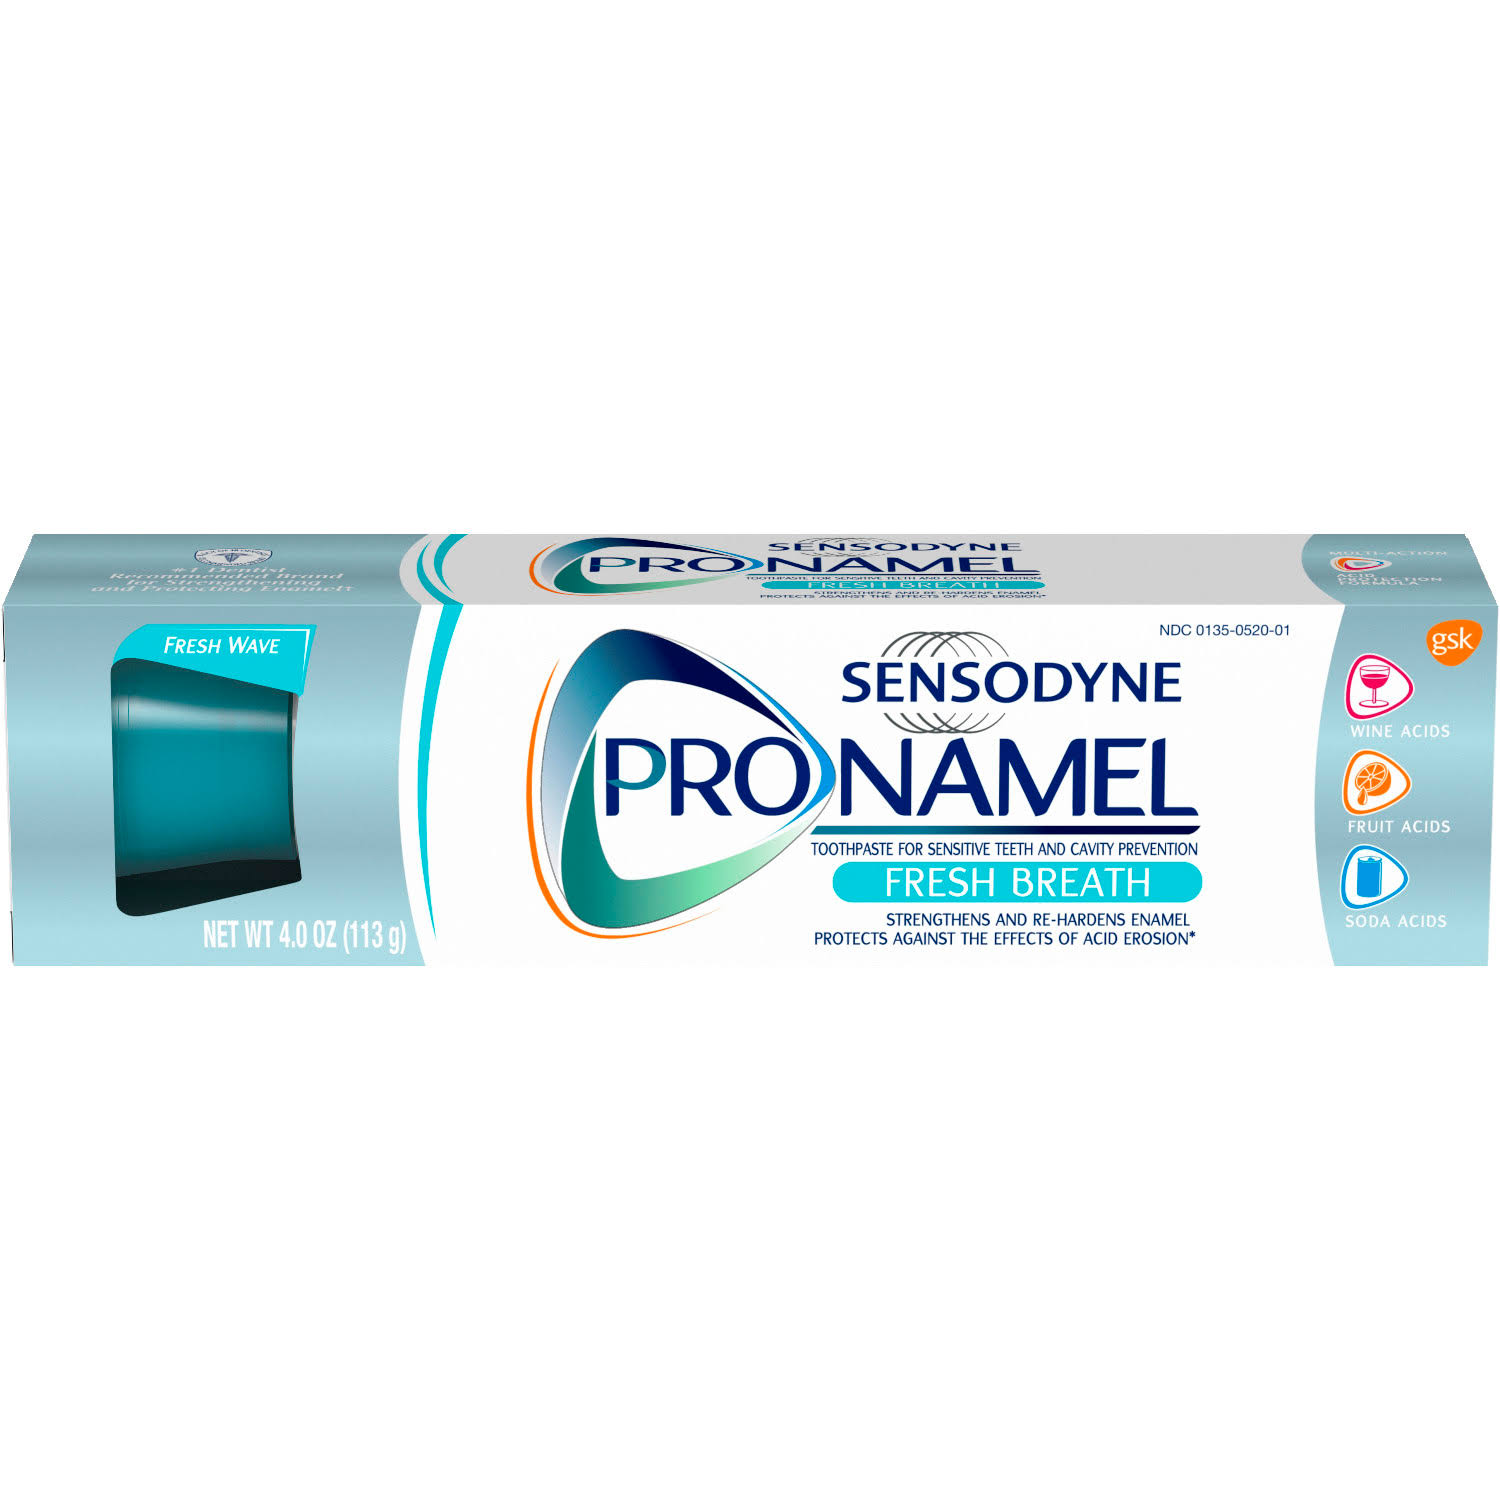 Sensodyne Pronamel Toothpaste - Fresh Breath, 113g